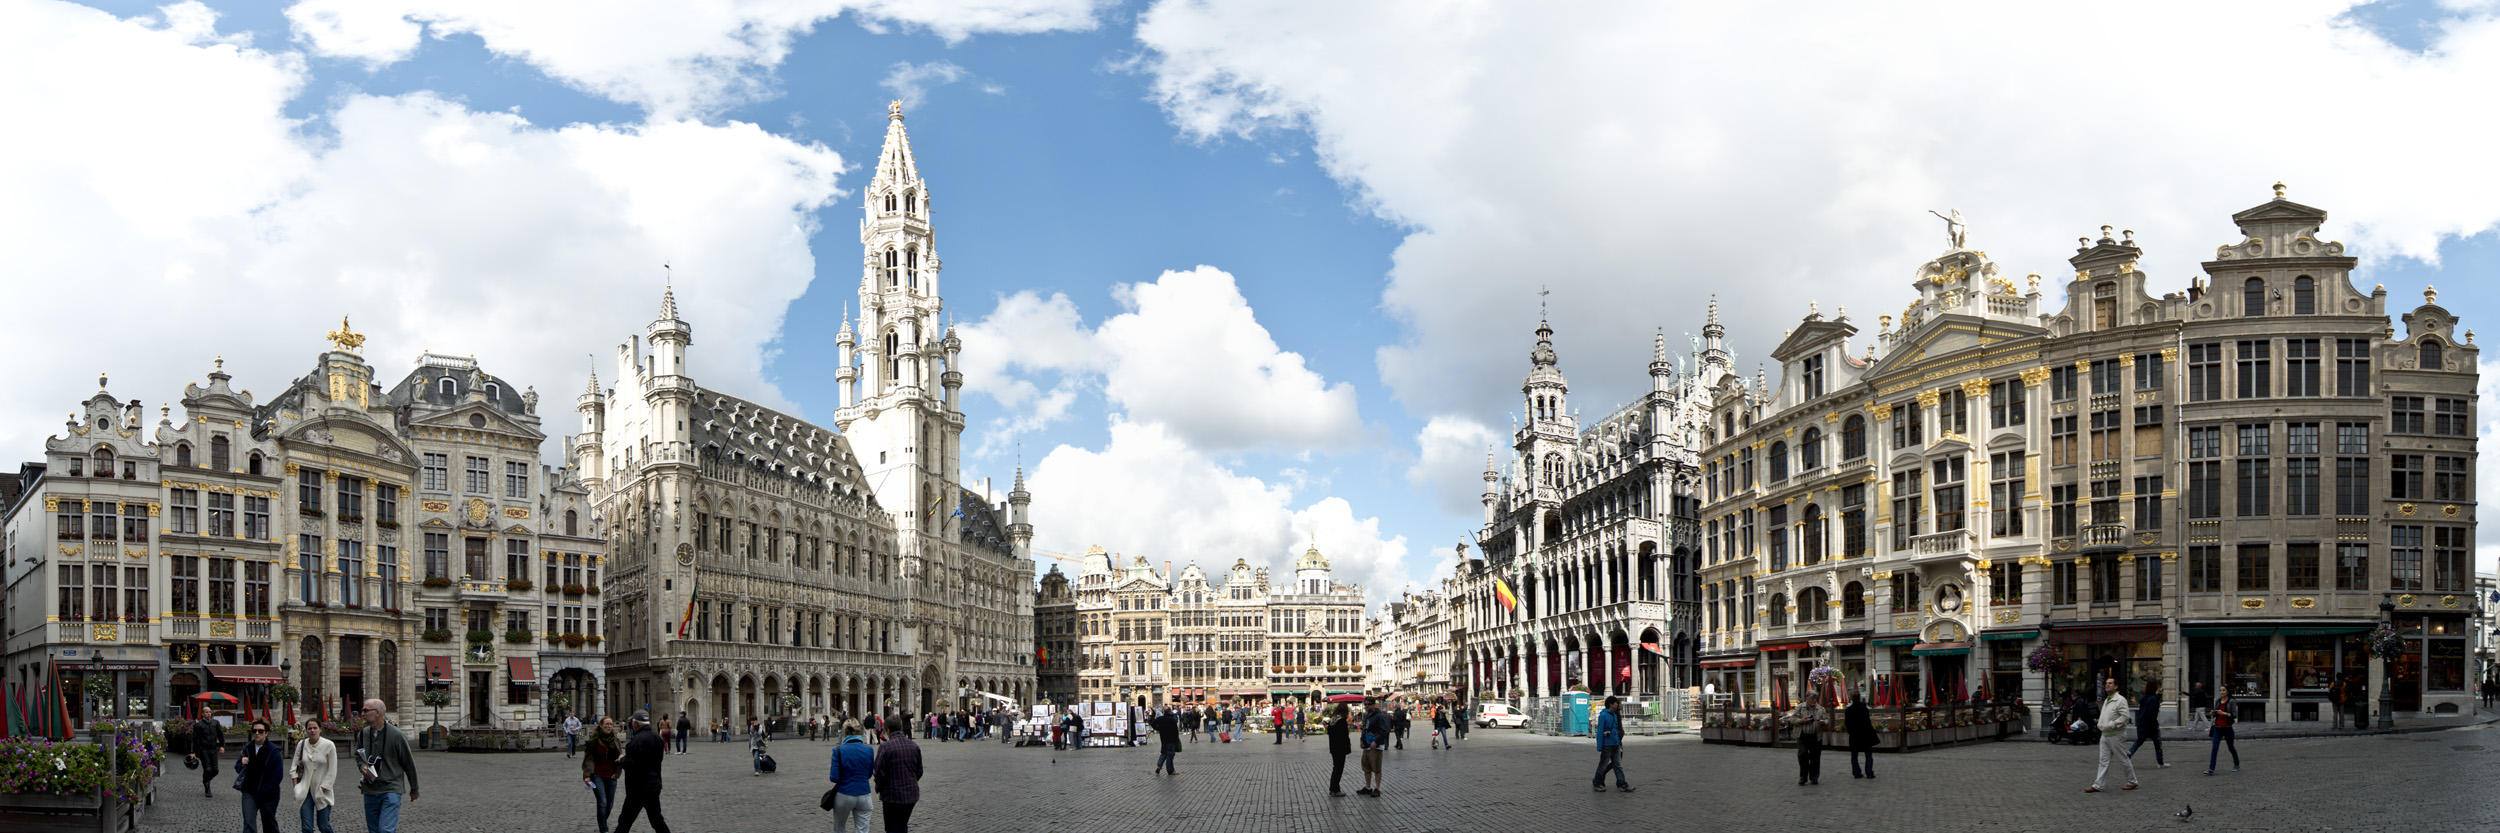 Brussels_Panorama_(8293237603)